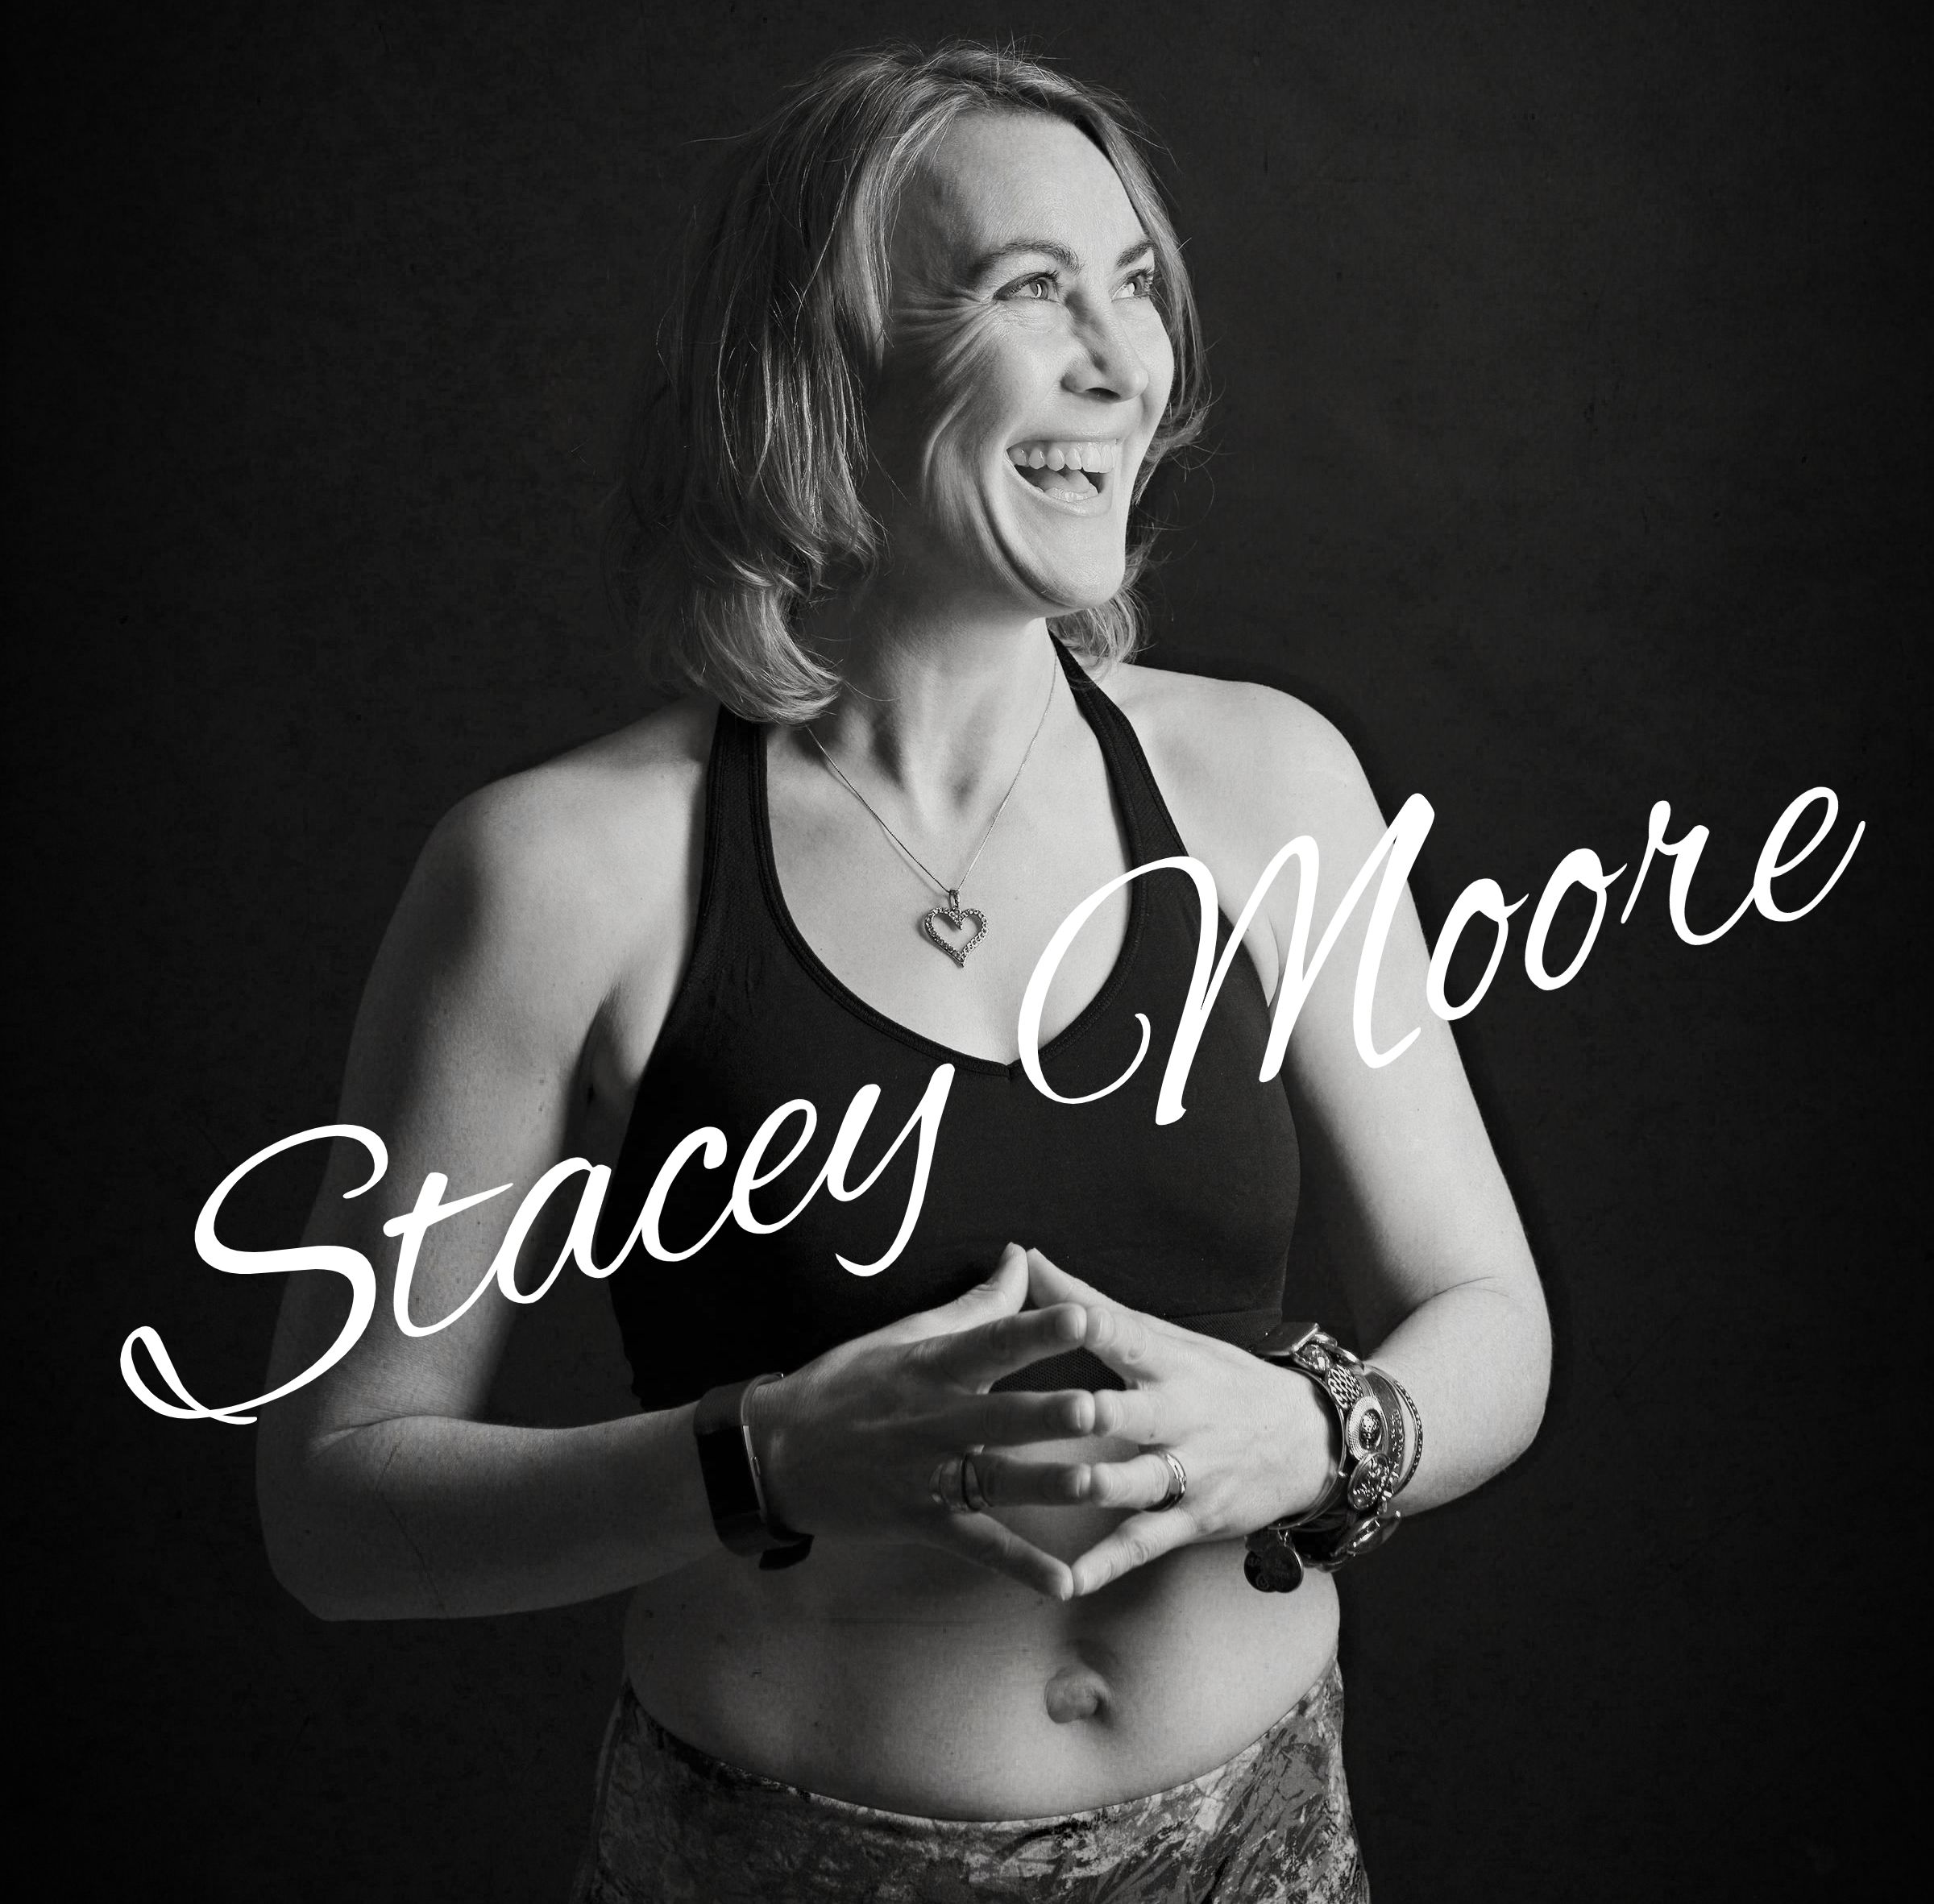 stacey-moore